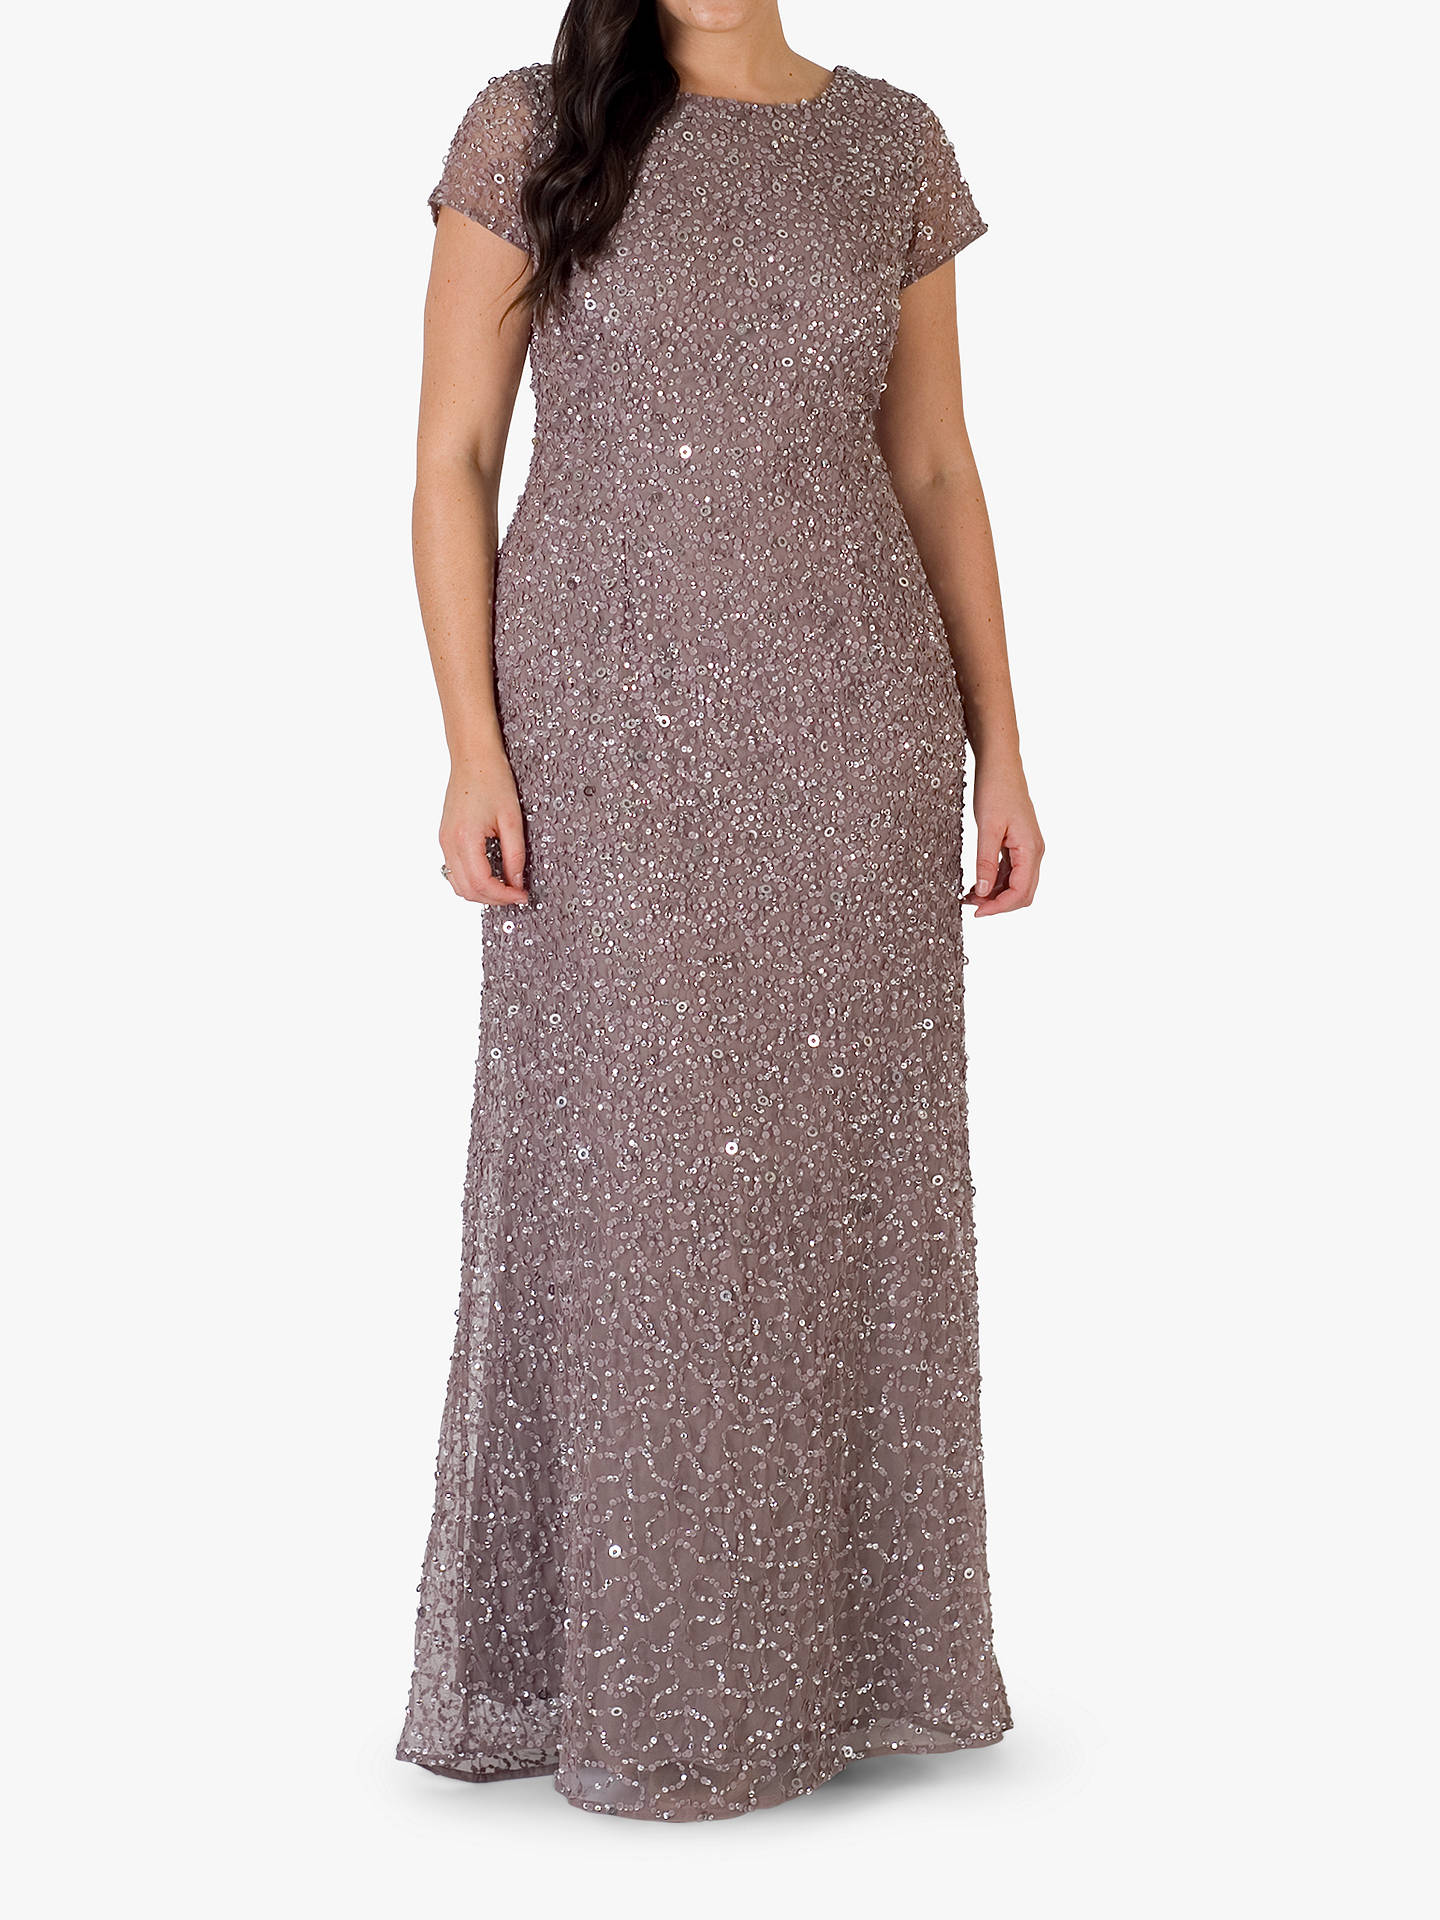 2d06e16fcc4 Buy Chesca Short Sleeve Sequin Maxi Dress